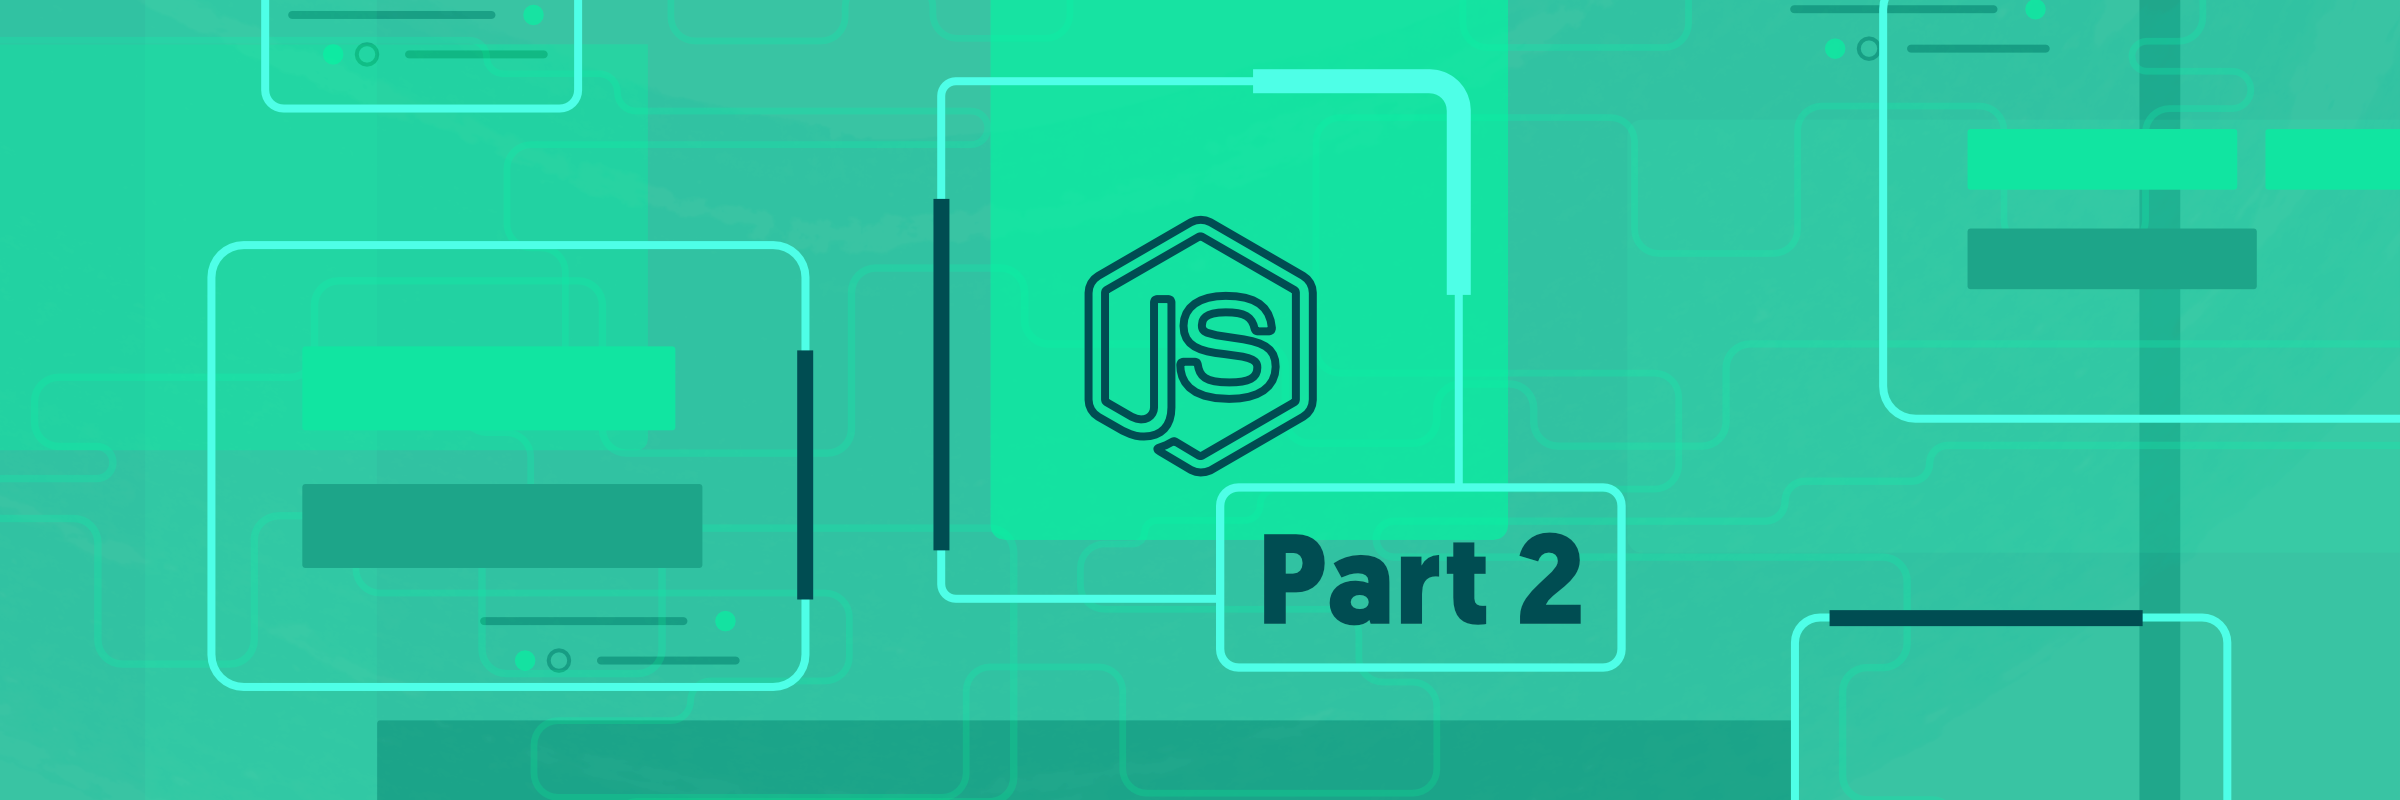 Creating an Identity Service with Node.js Part 2